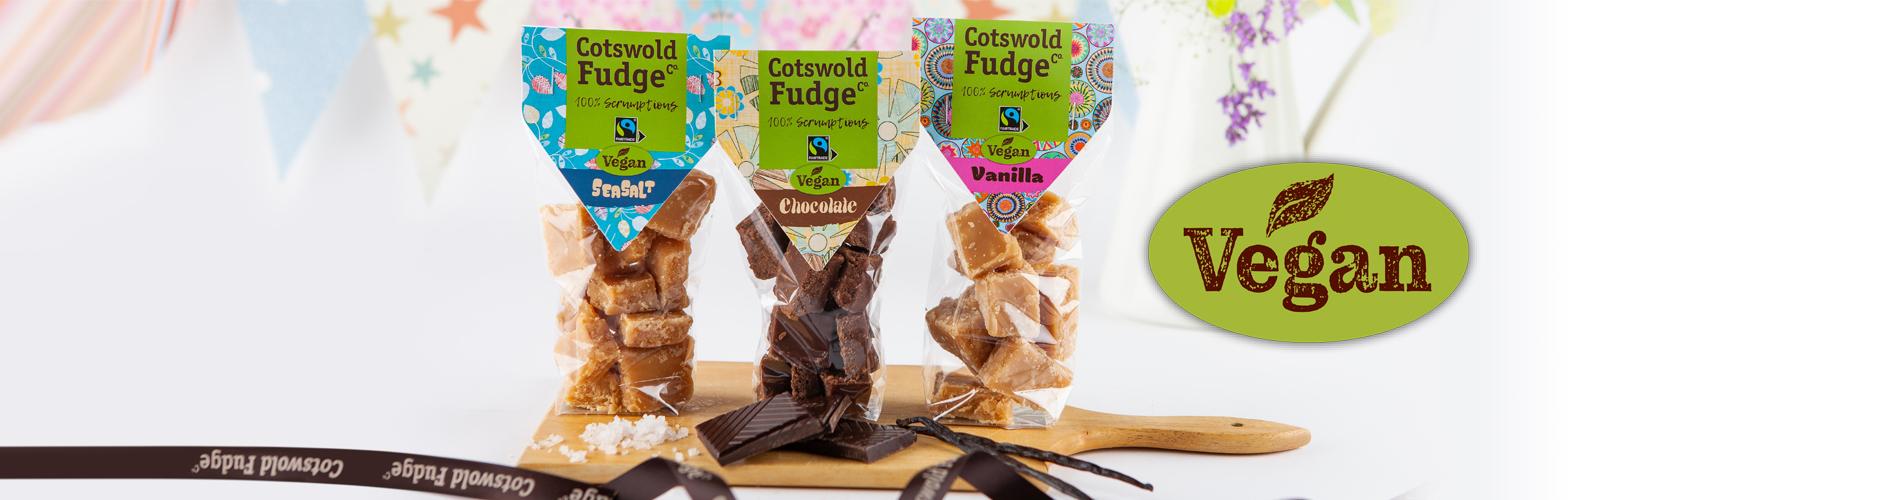 vegan_fudge_banner_1